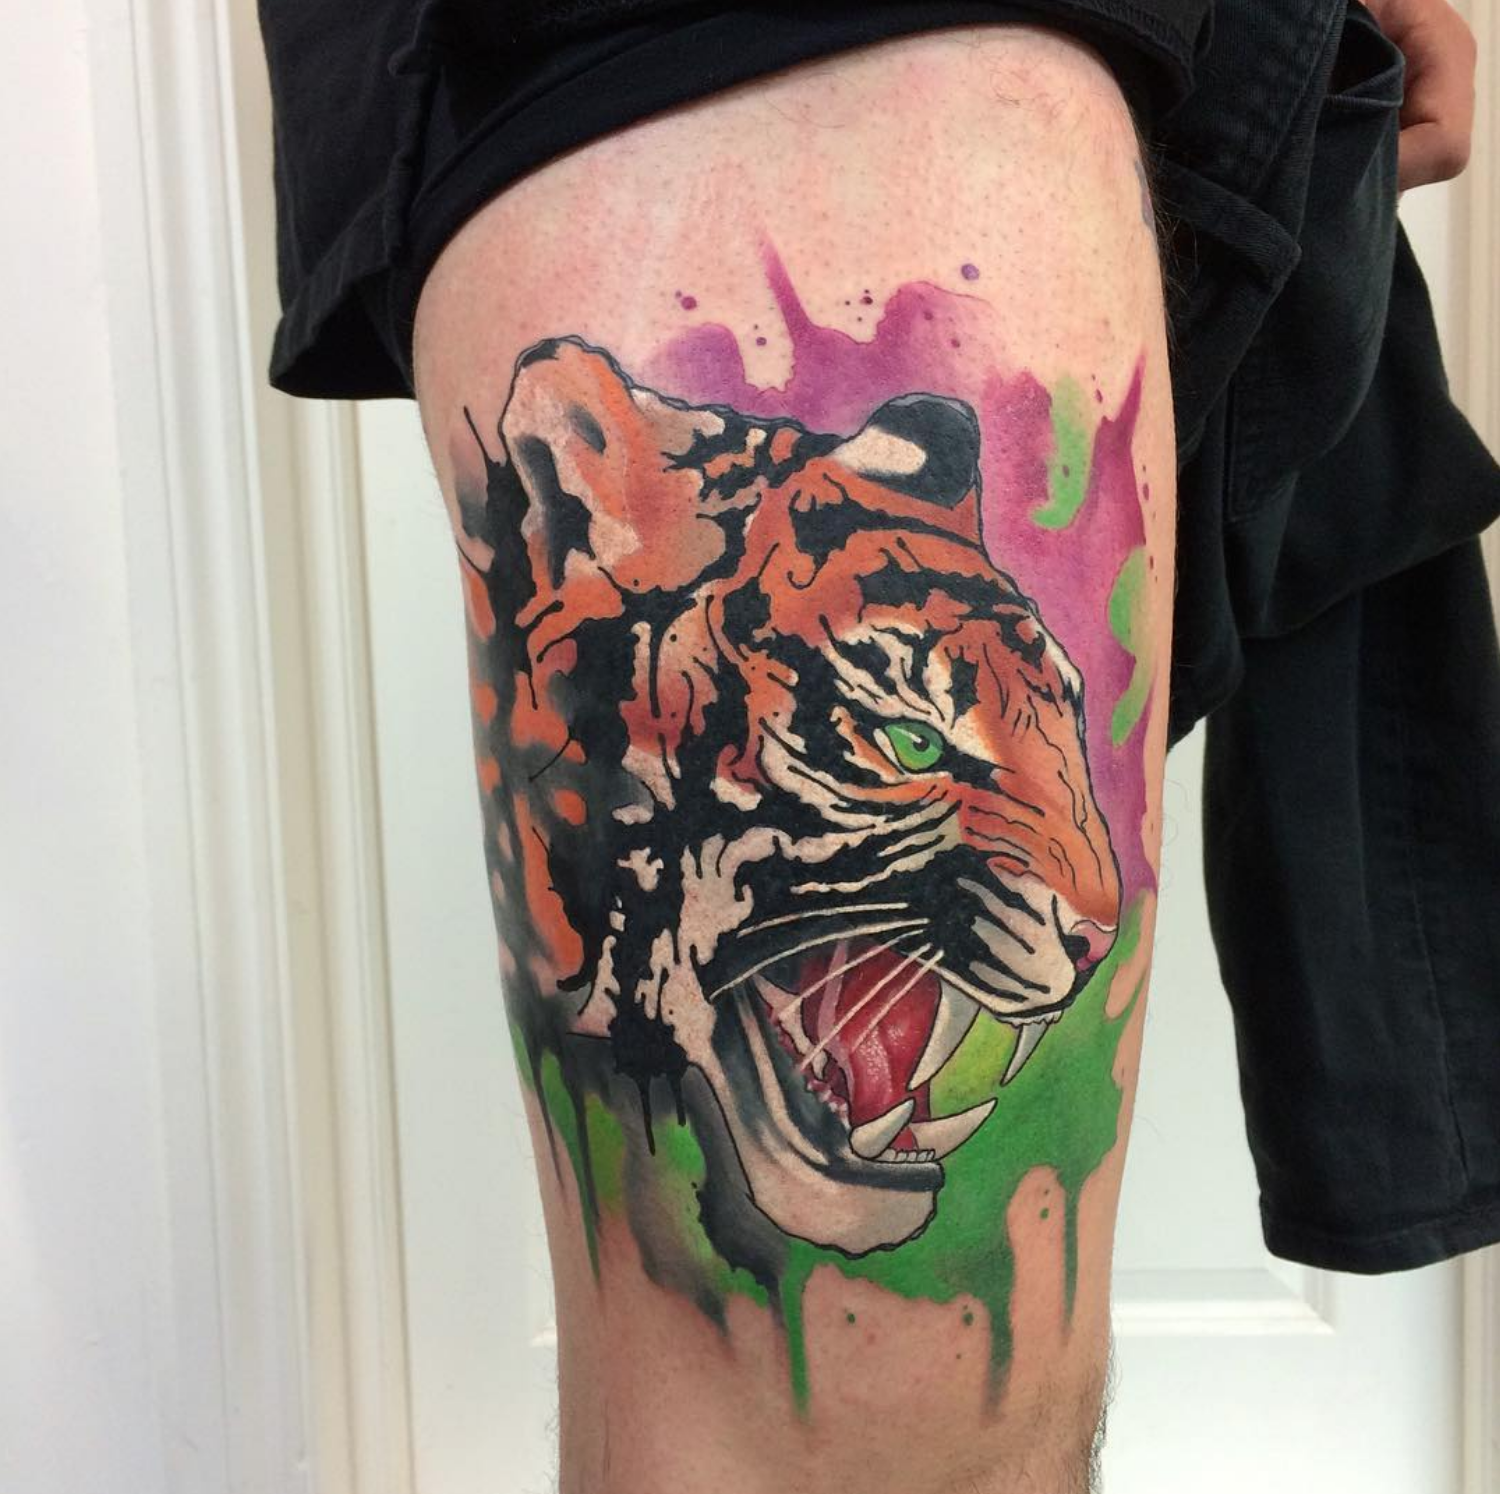 piink-tattoo-piercing-emil-tattoostudio-basel-tiger